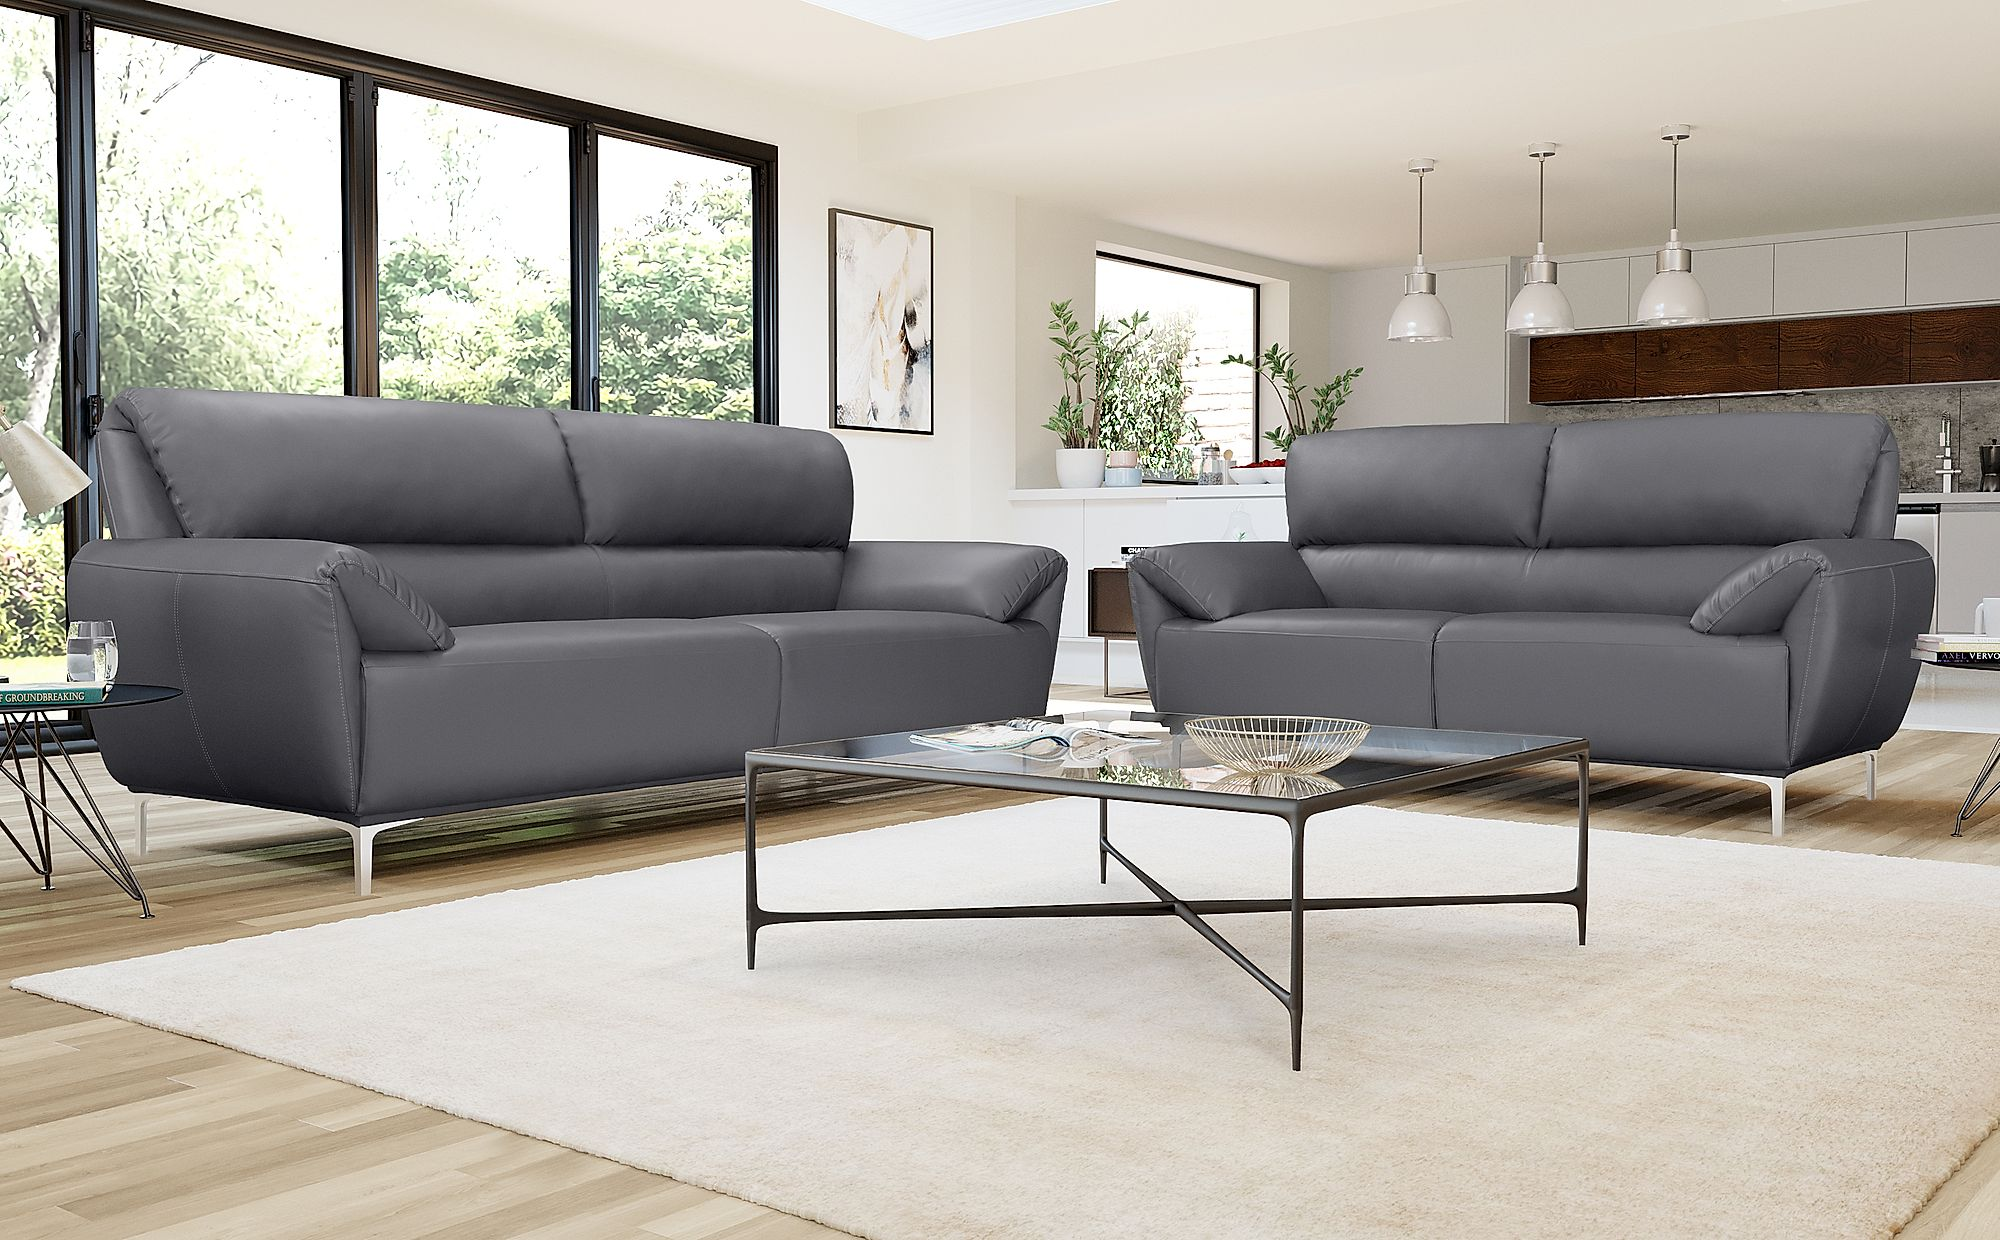 Enzo Grey Leather Sofa 3+2 Seater Only £899.98 | Furniture Choice